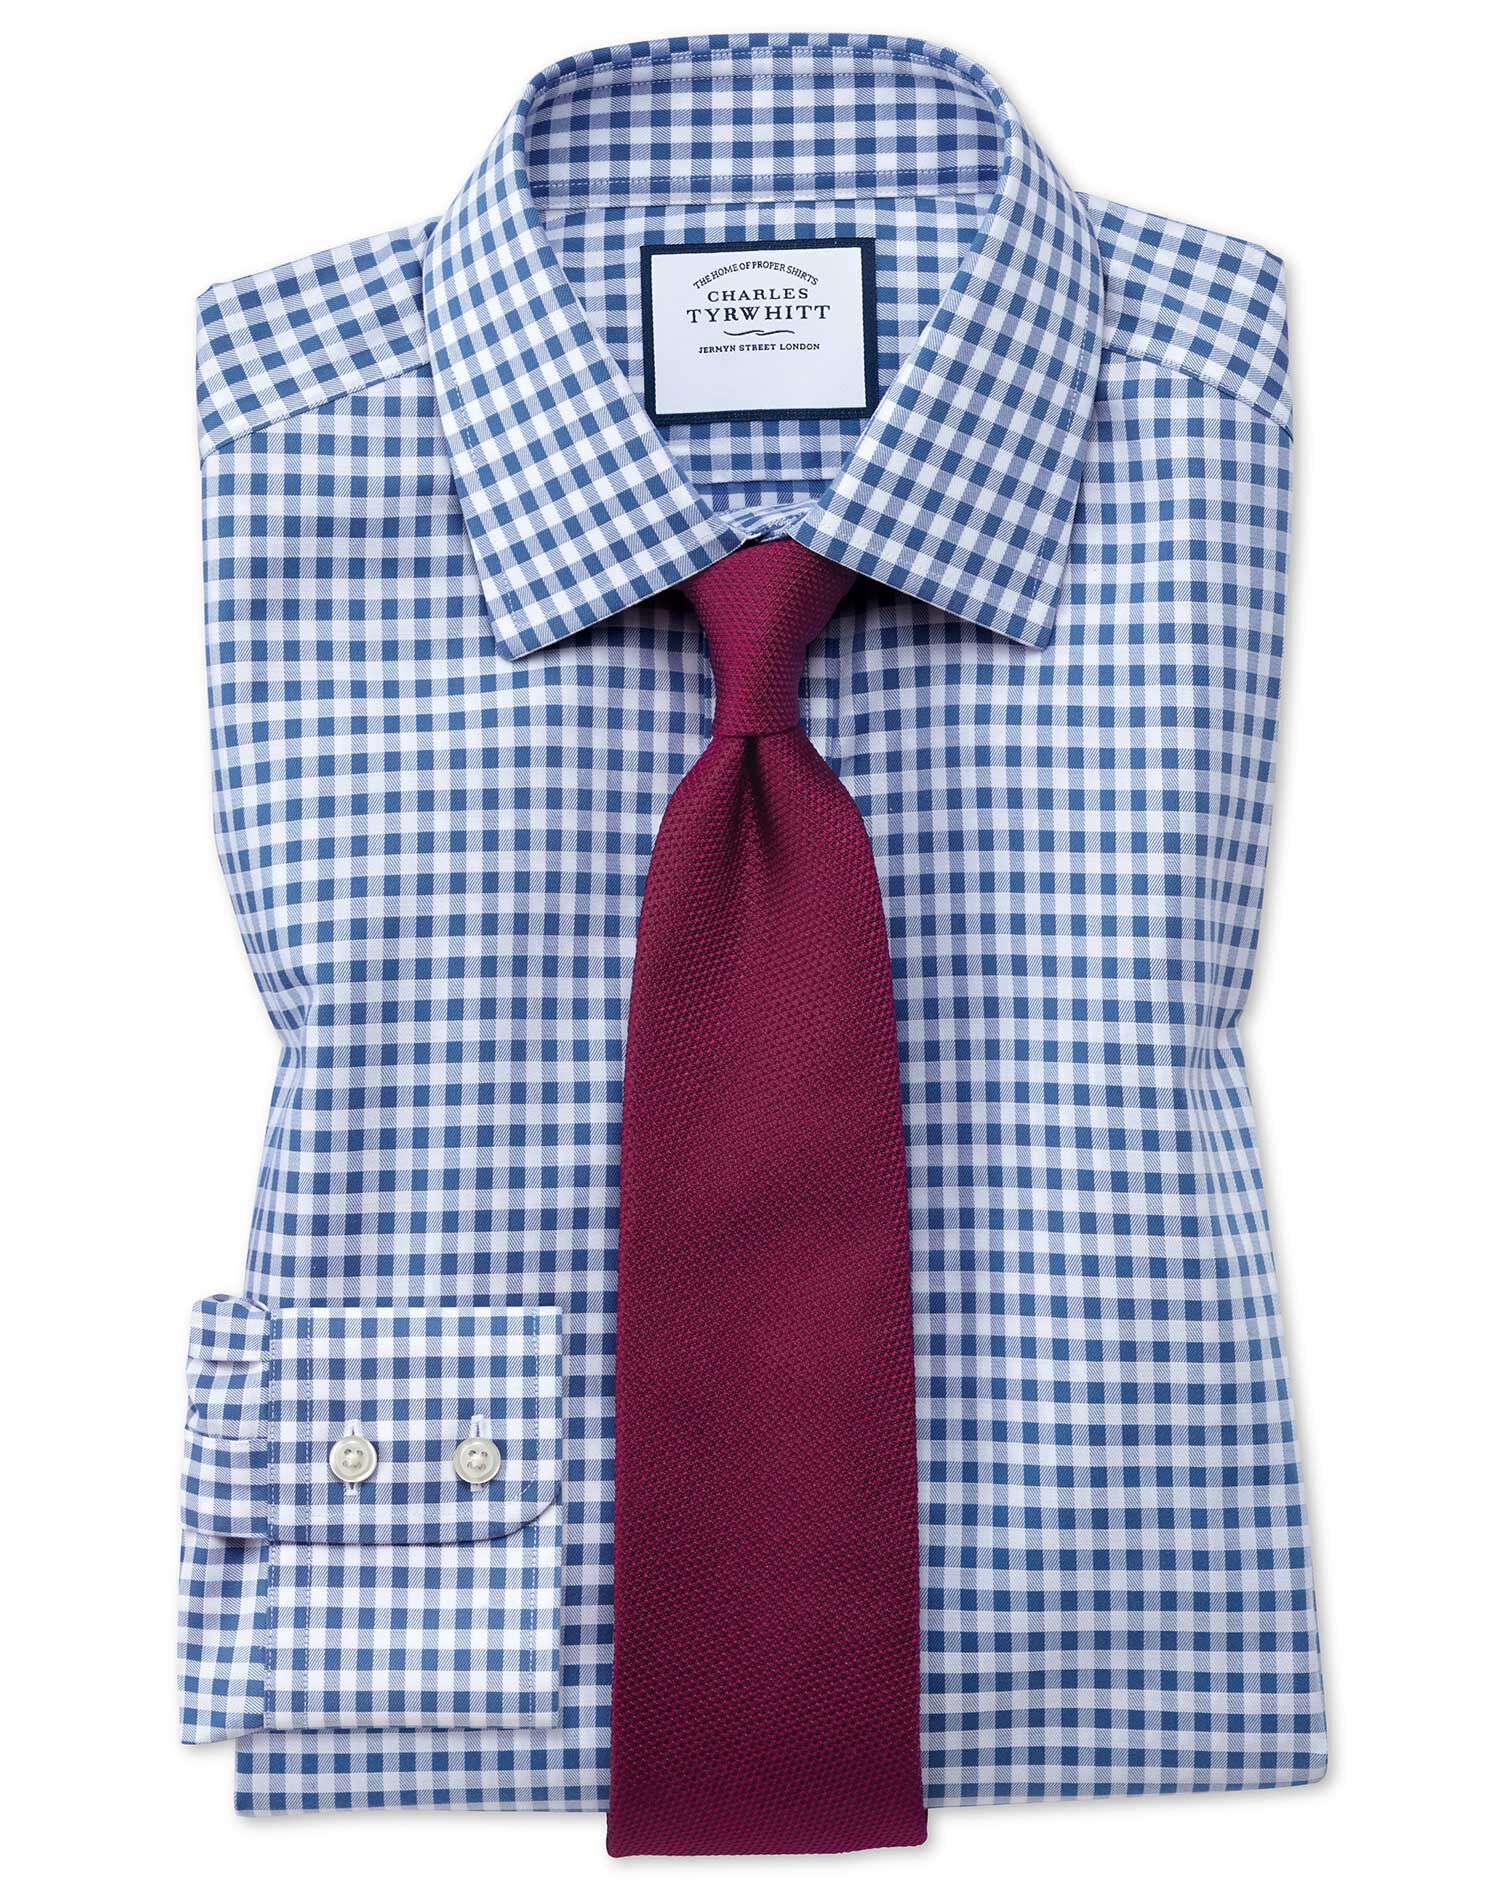 Slim Fit Non-Iron Gingham Mid Blue Cotton Formal Shirt Single Cuff Size 15.5/33 by Charles Tyrwhitt